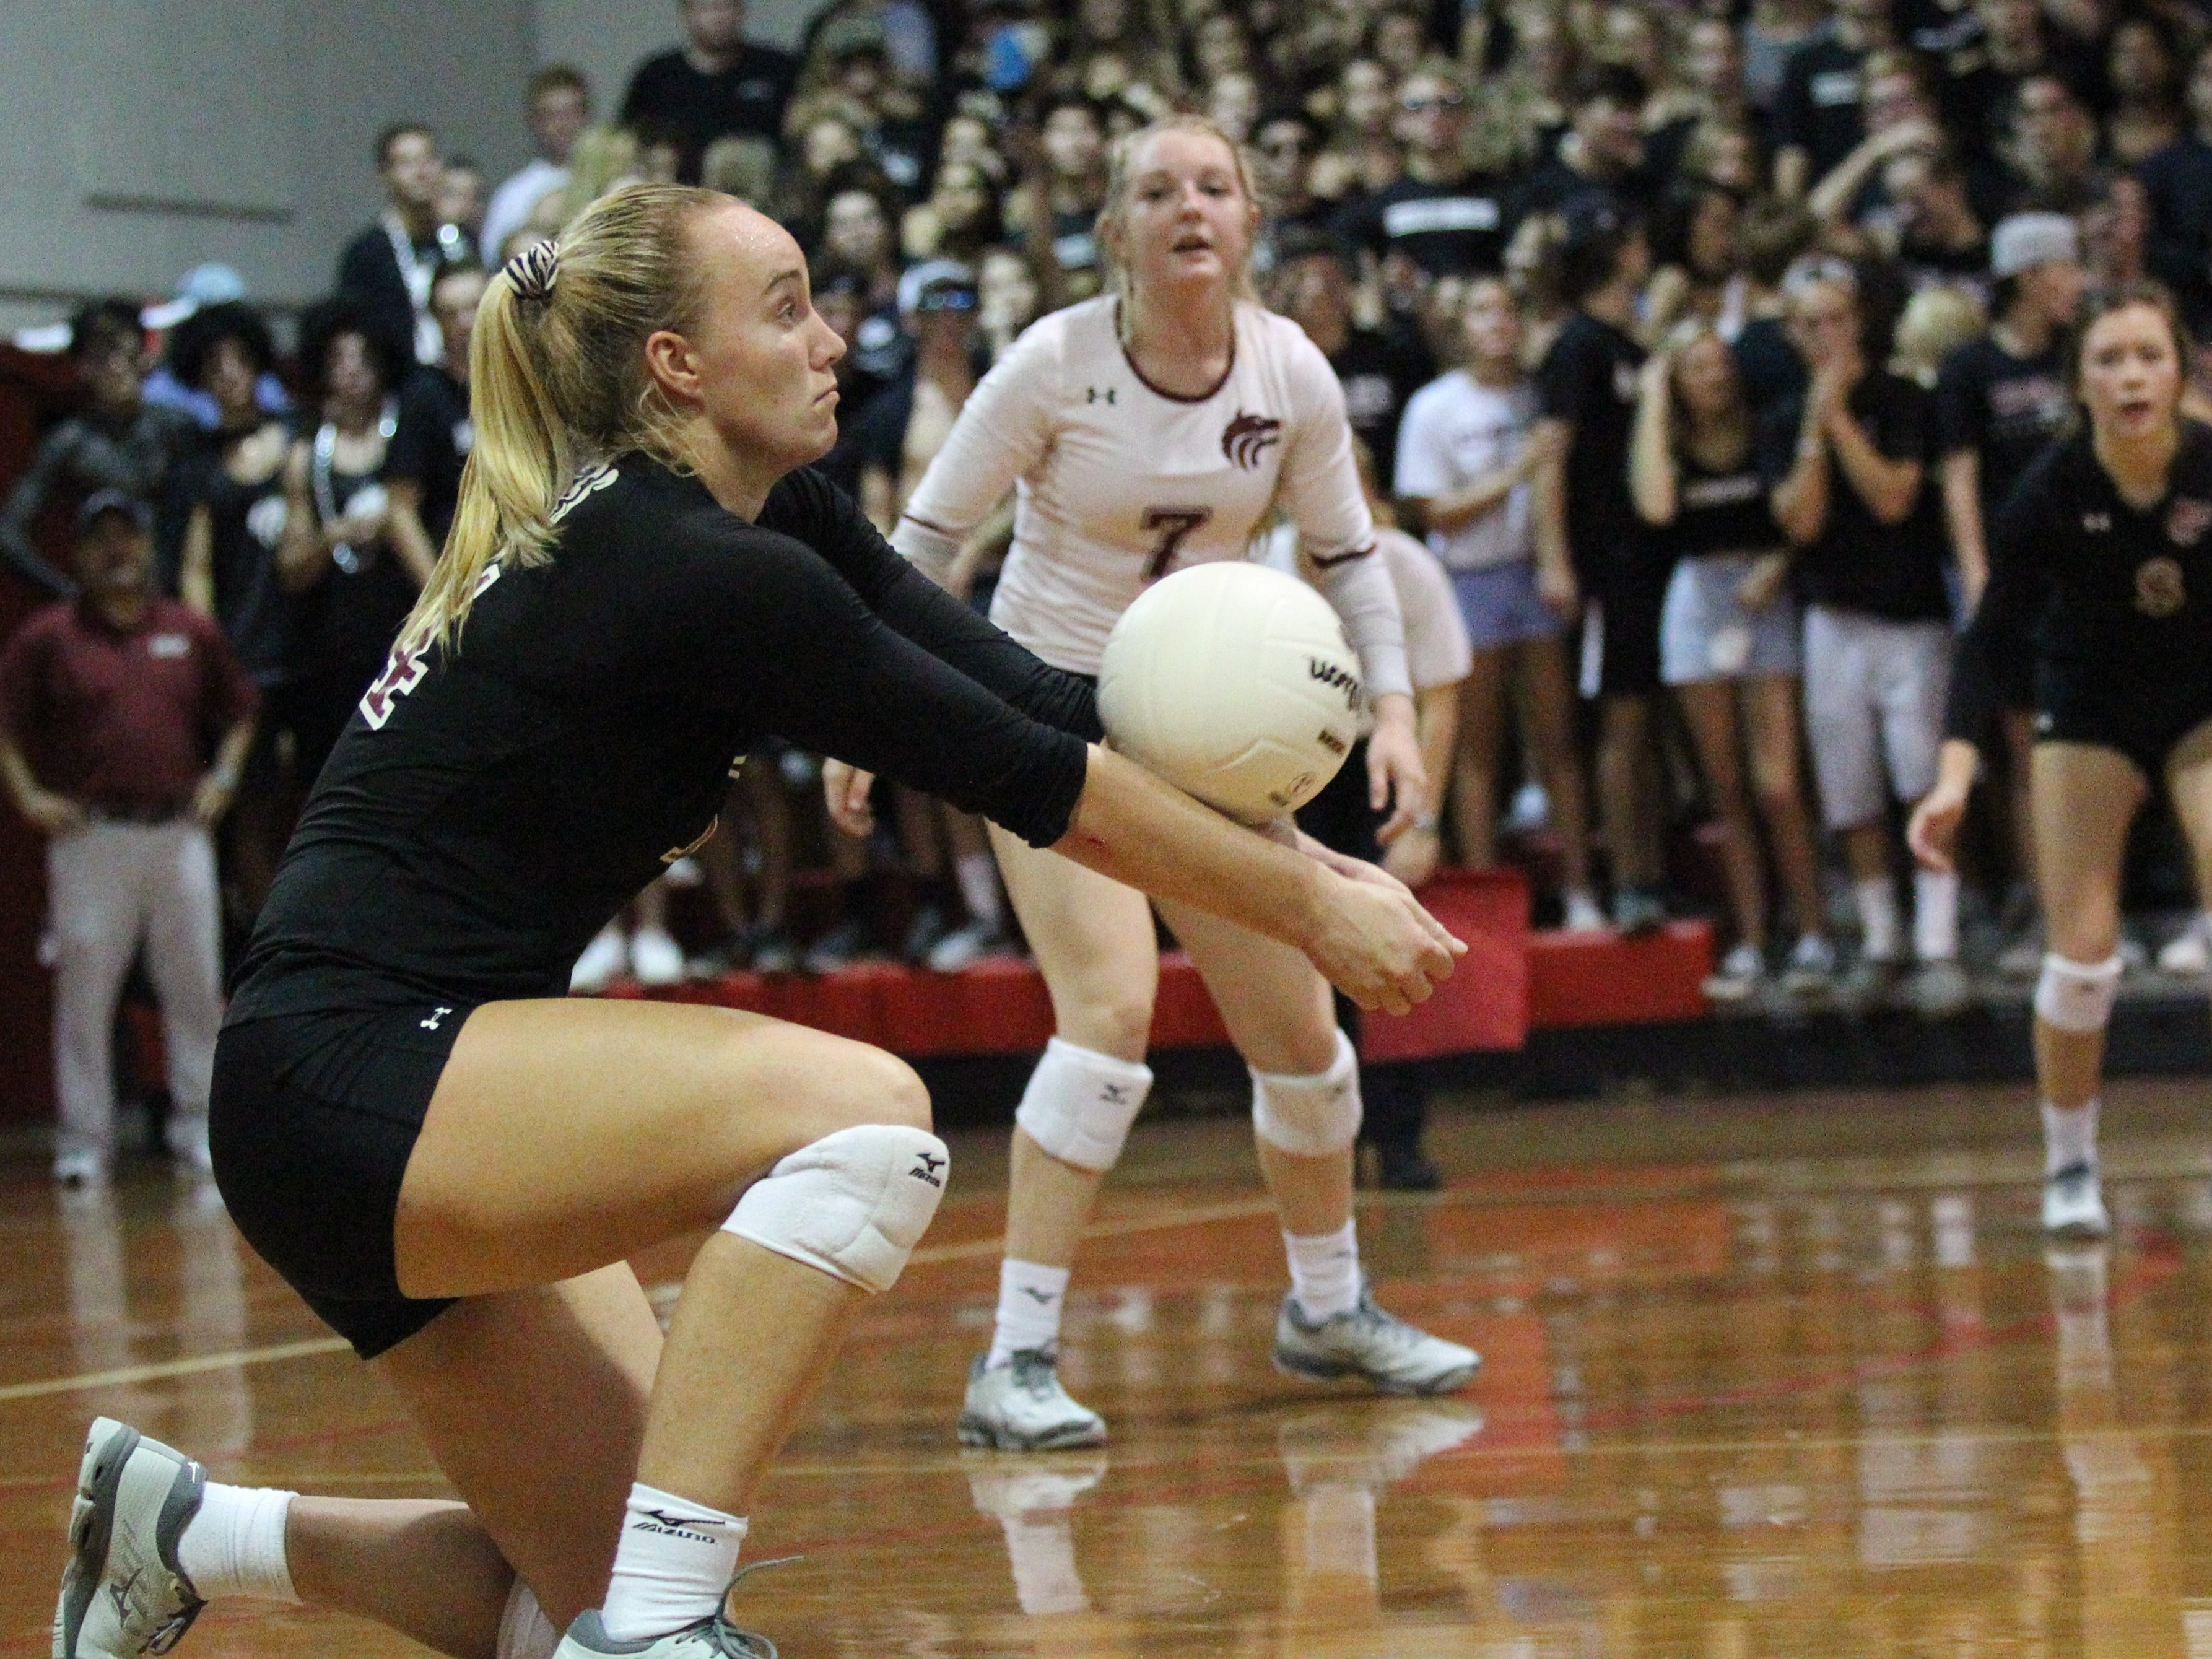 Chiles' Aly Freeland receives serve as Leon beat Chiles 3-0 on Thursday night in a District 2-8A volleyball game.